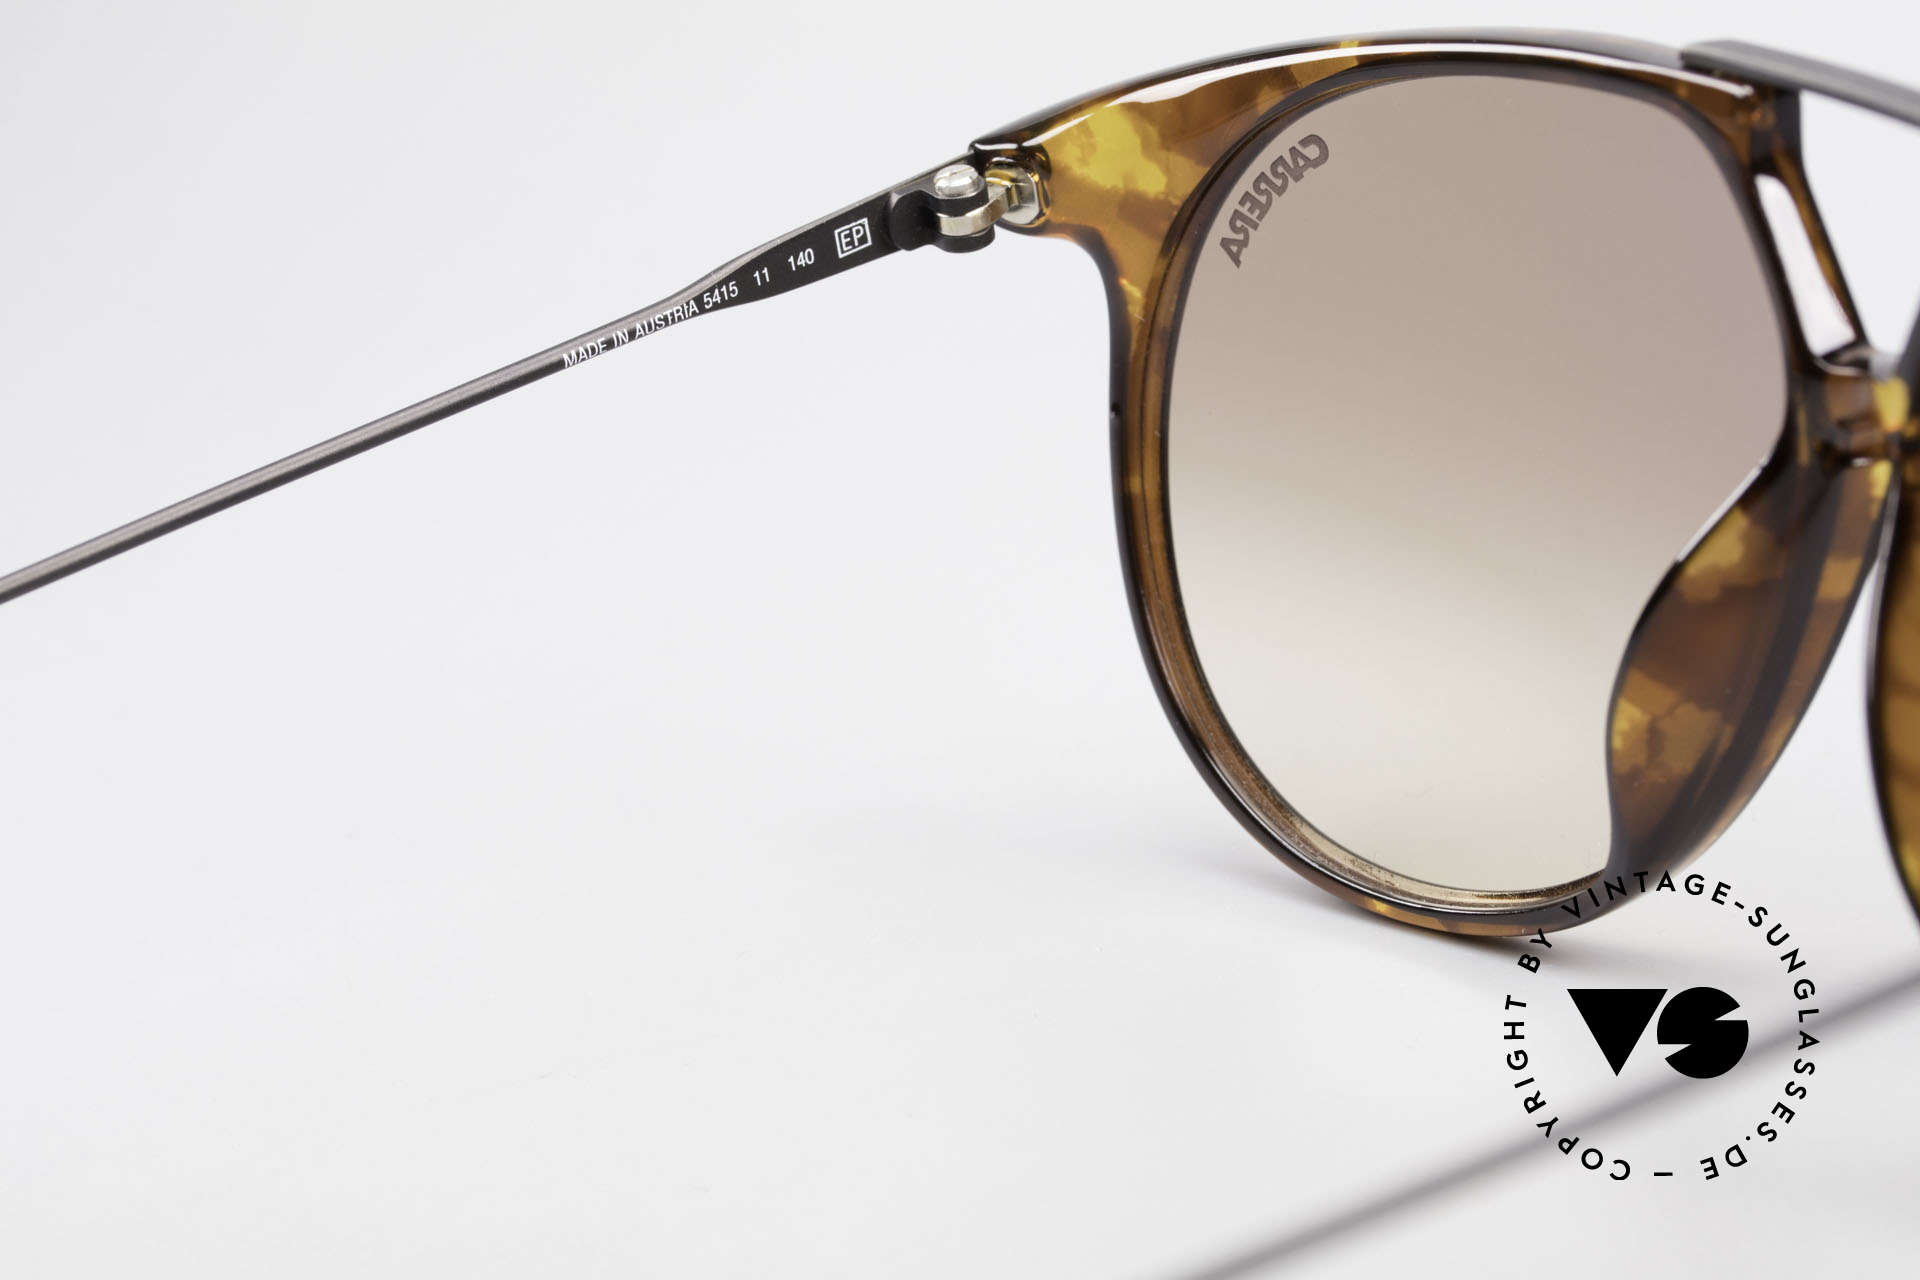 Carrera 5415 Old 80's Shades 2 Sets Of Lenses, NO RETRO sunglasses, but a rare 30 years old original, Made for Men